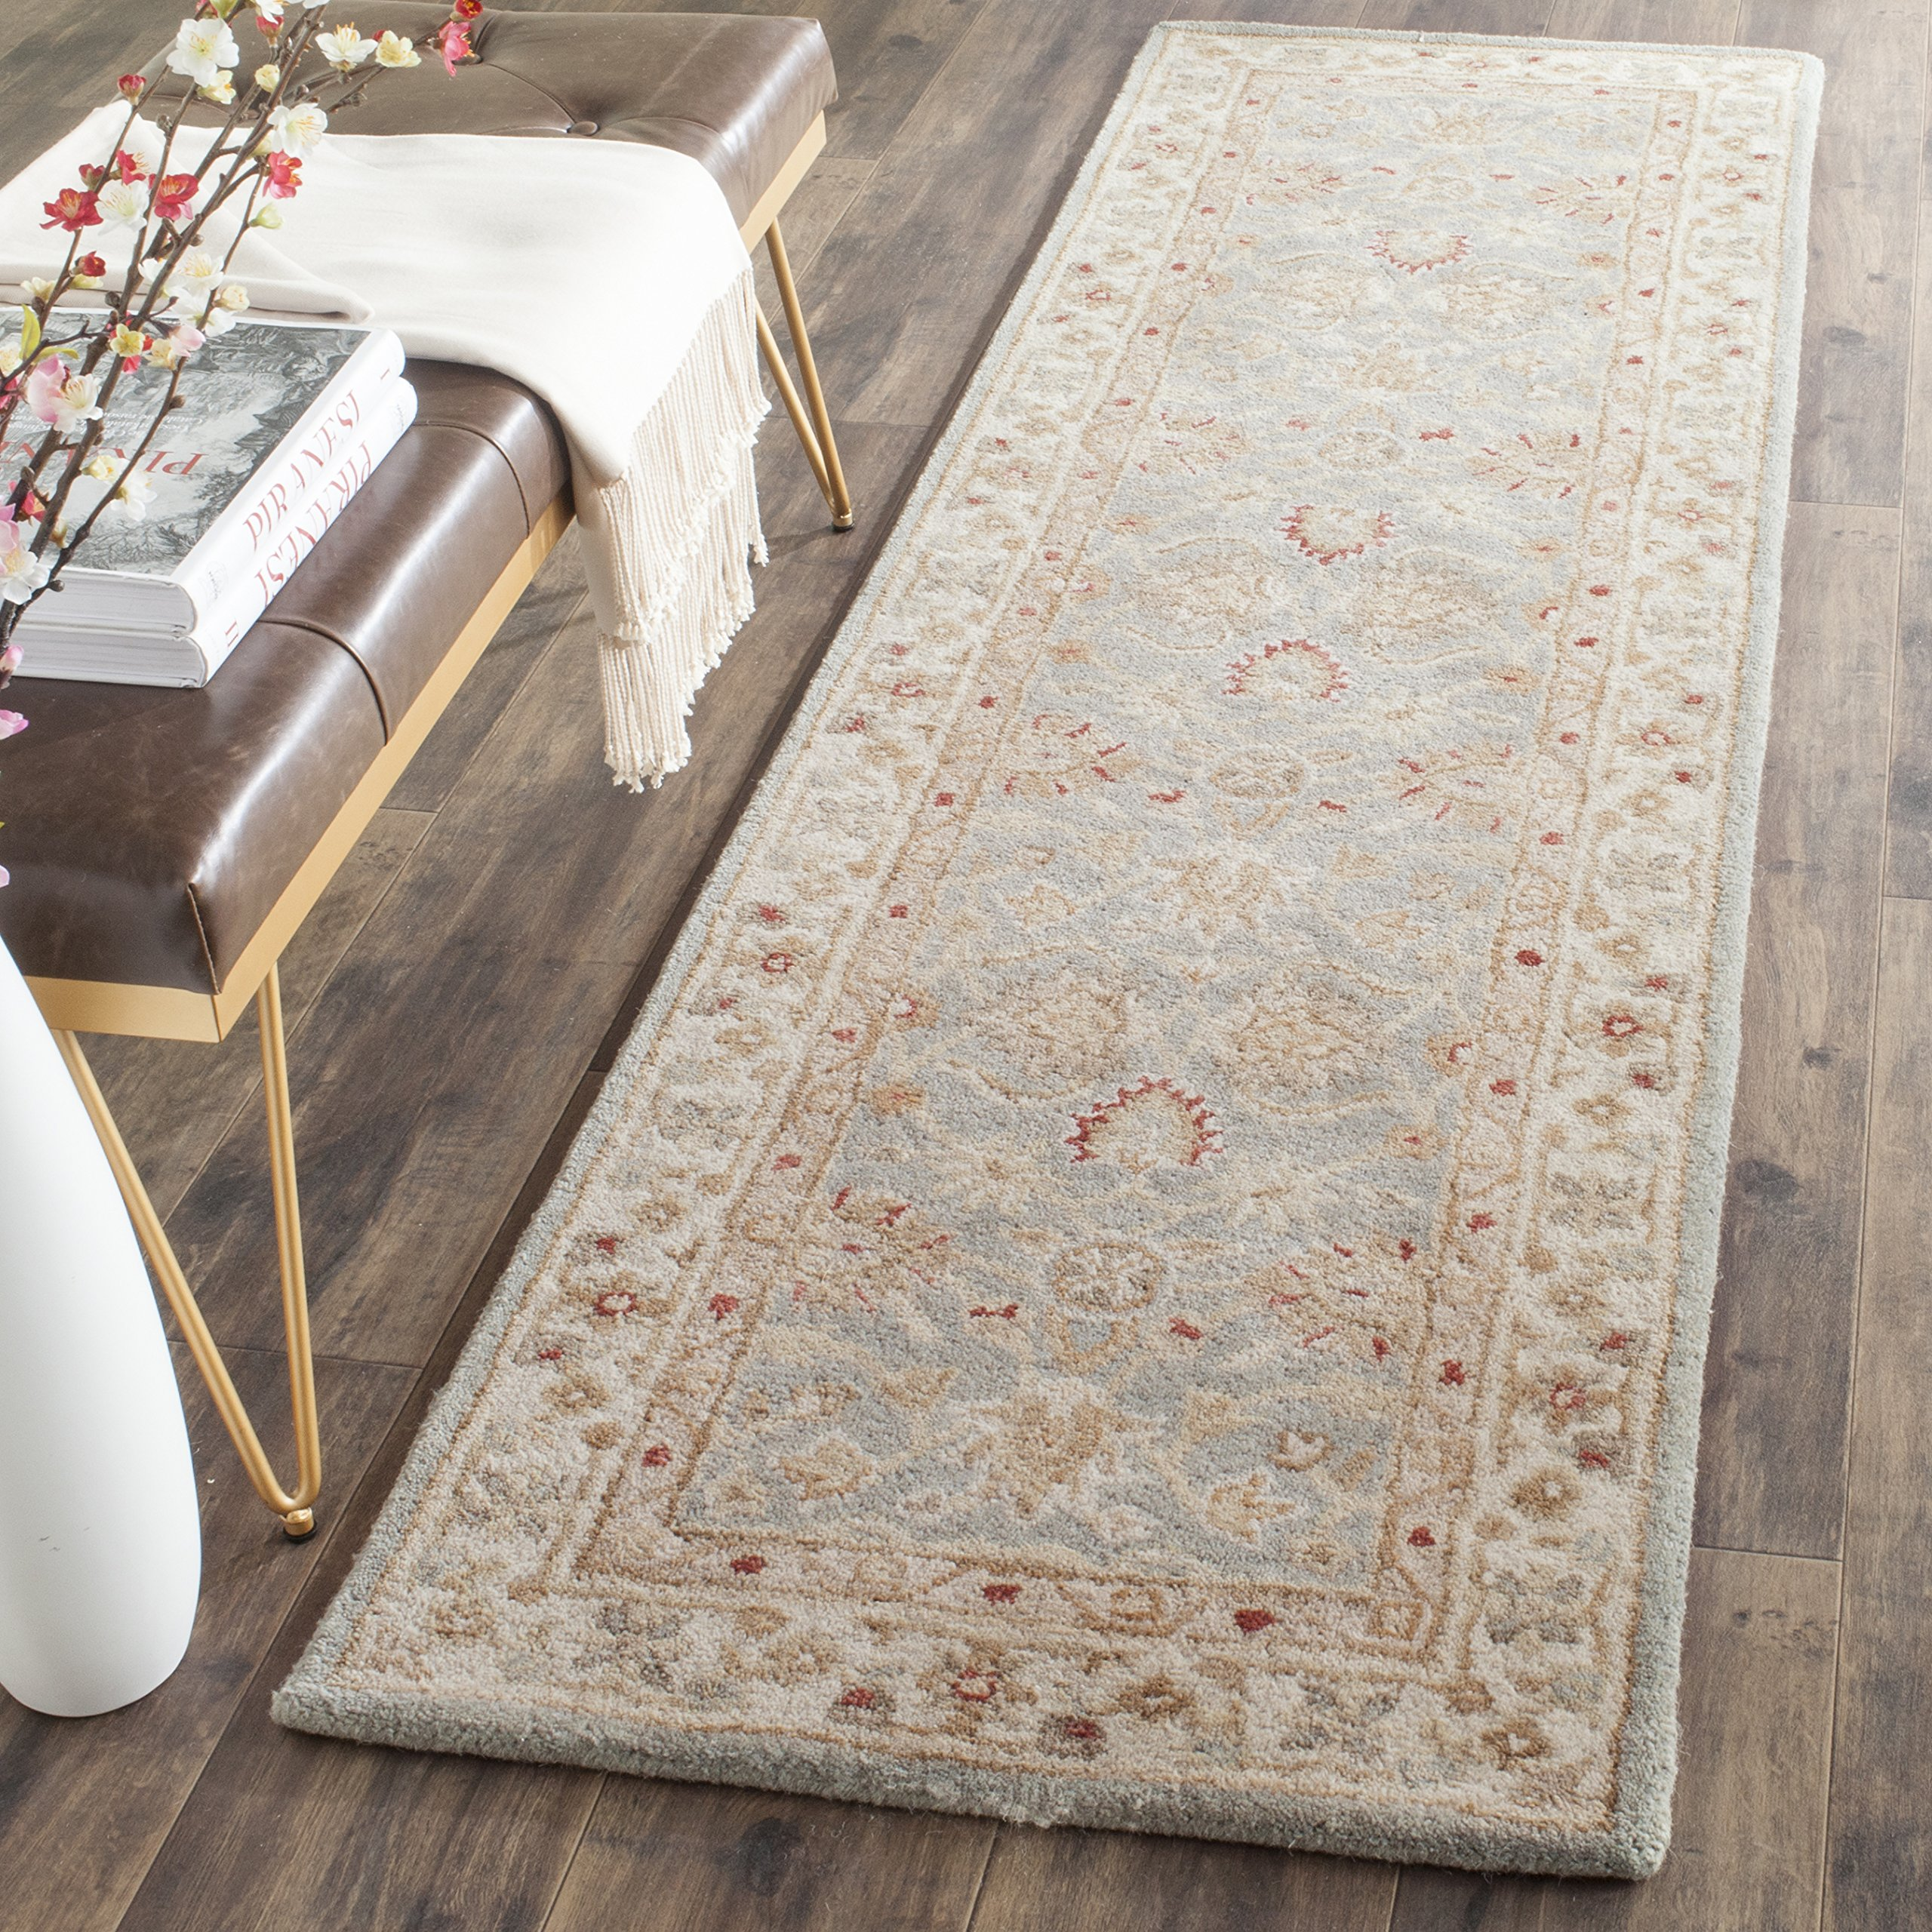 Safavieh Antiquities Collection AT822A Handmade Traditional Oriental Grey Blue and Beige Wool Runner (2'3'' x 6')